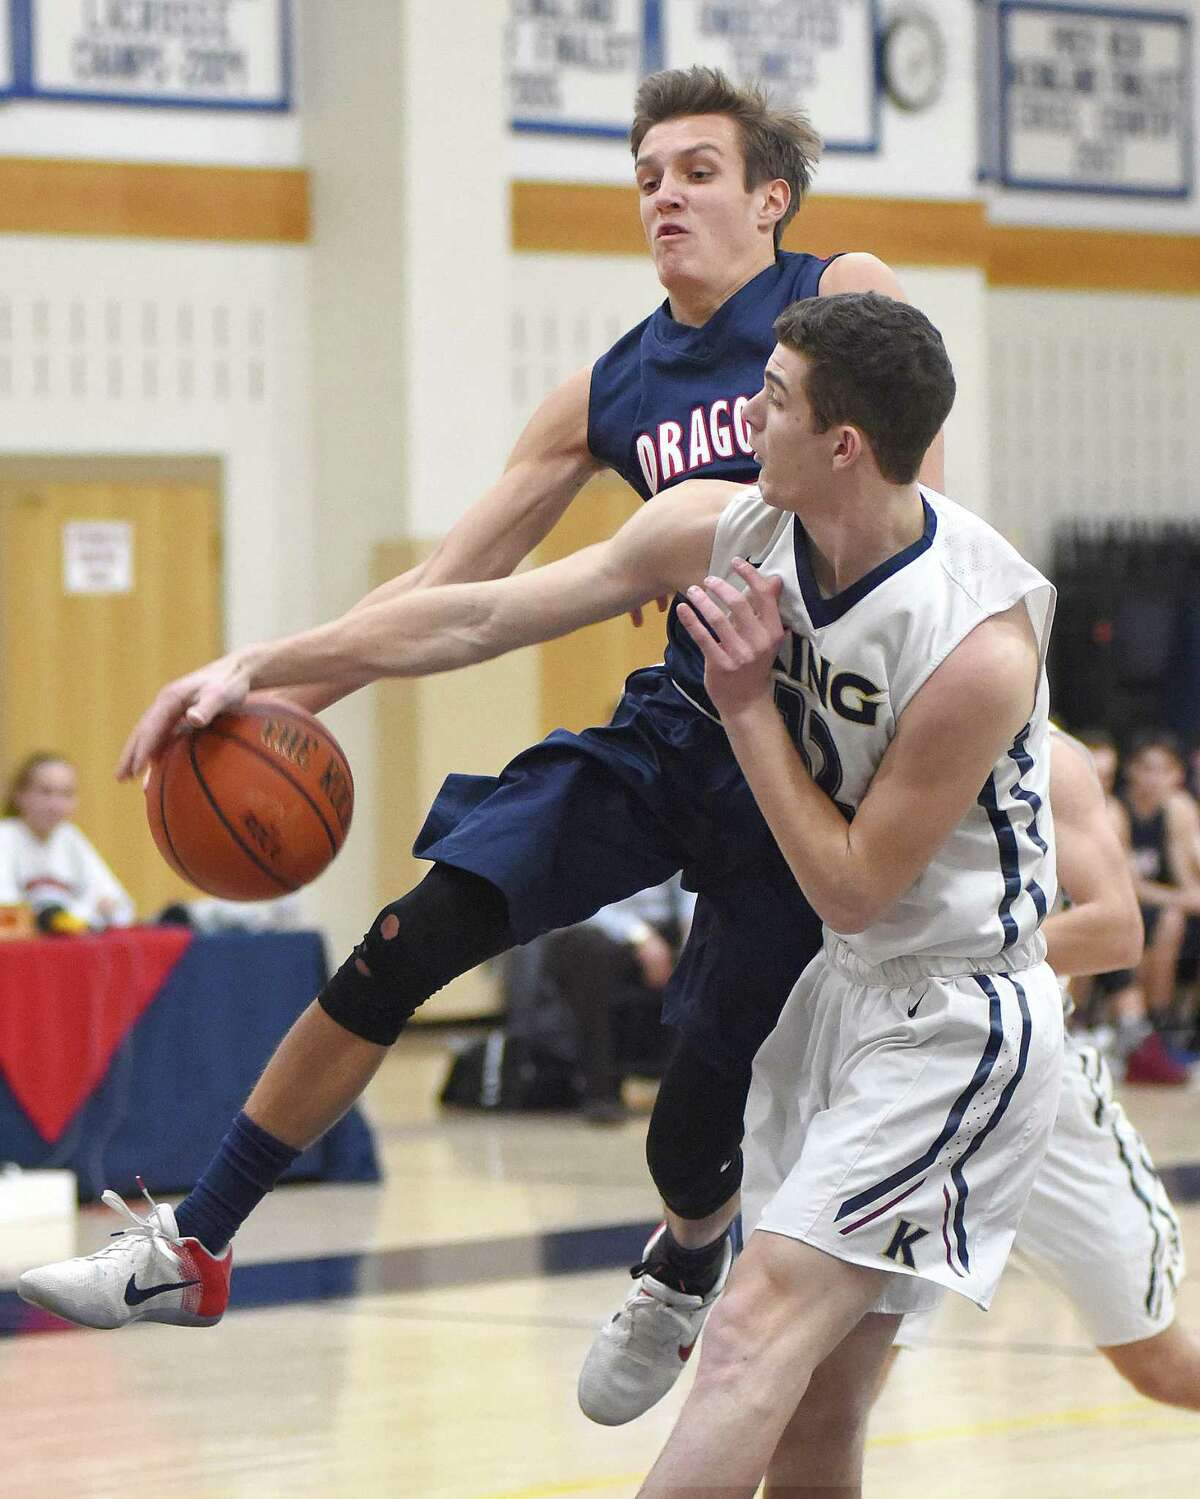 GFA's Henry Holzinger, left, is stripped of the ball by King's Renn Lints in Tuesday's game.